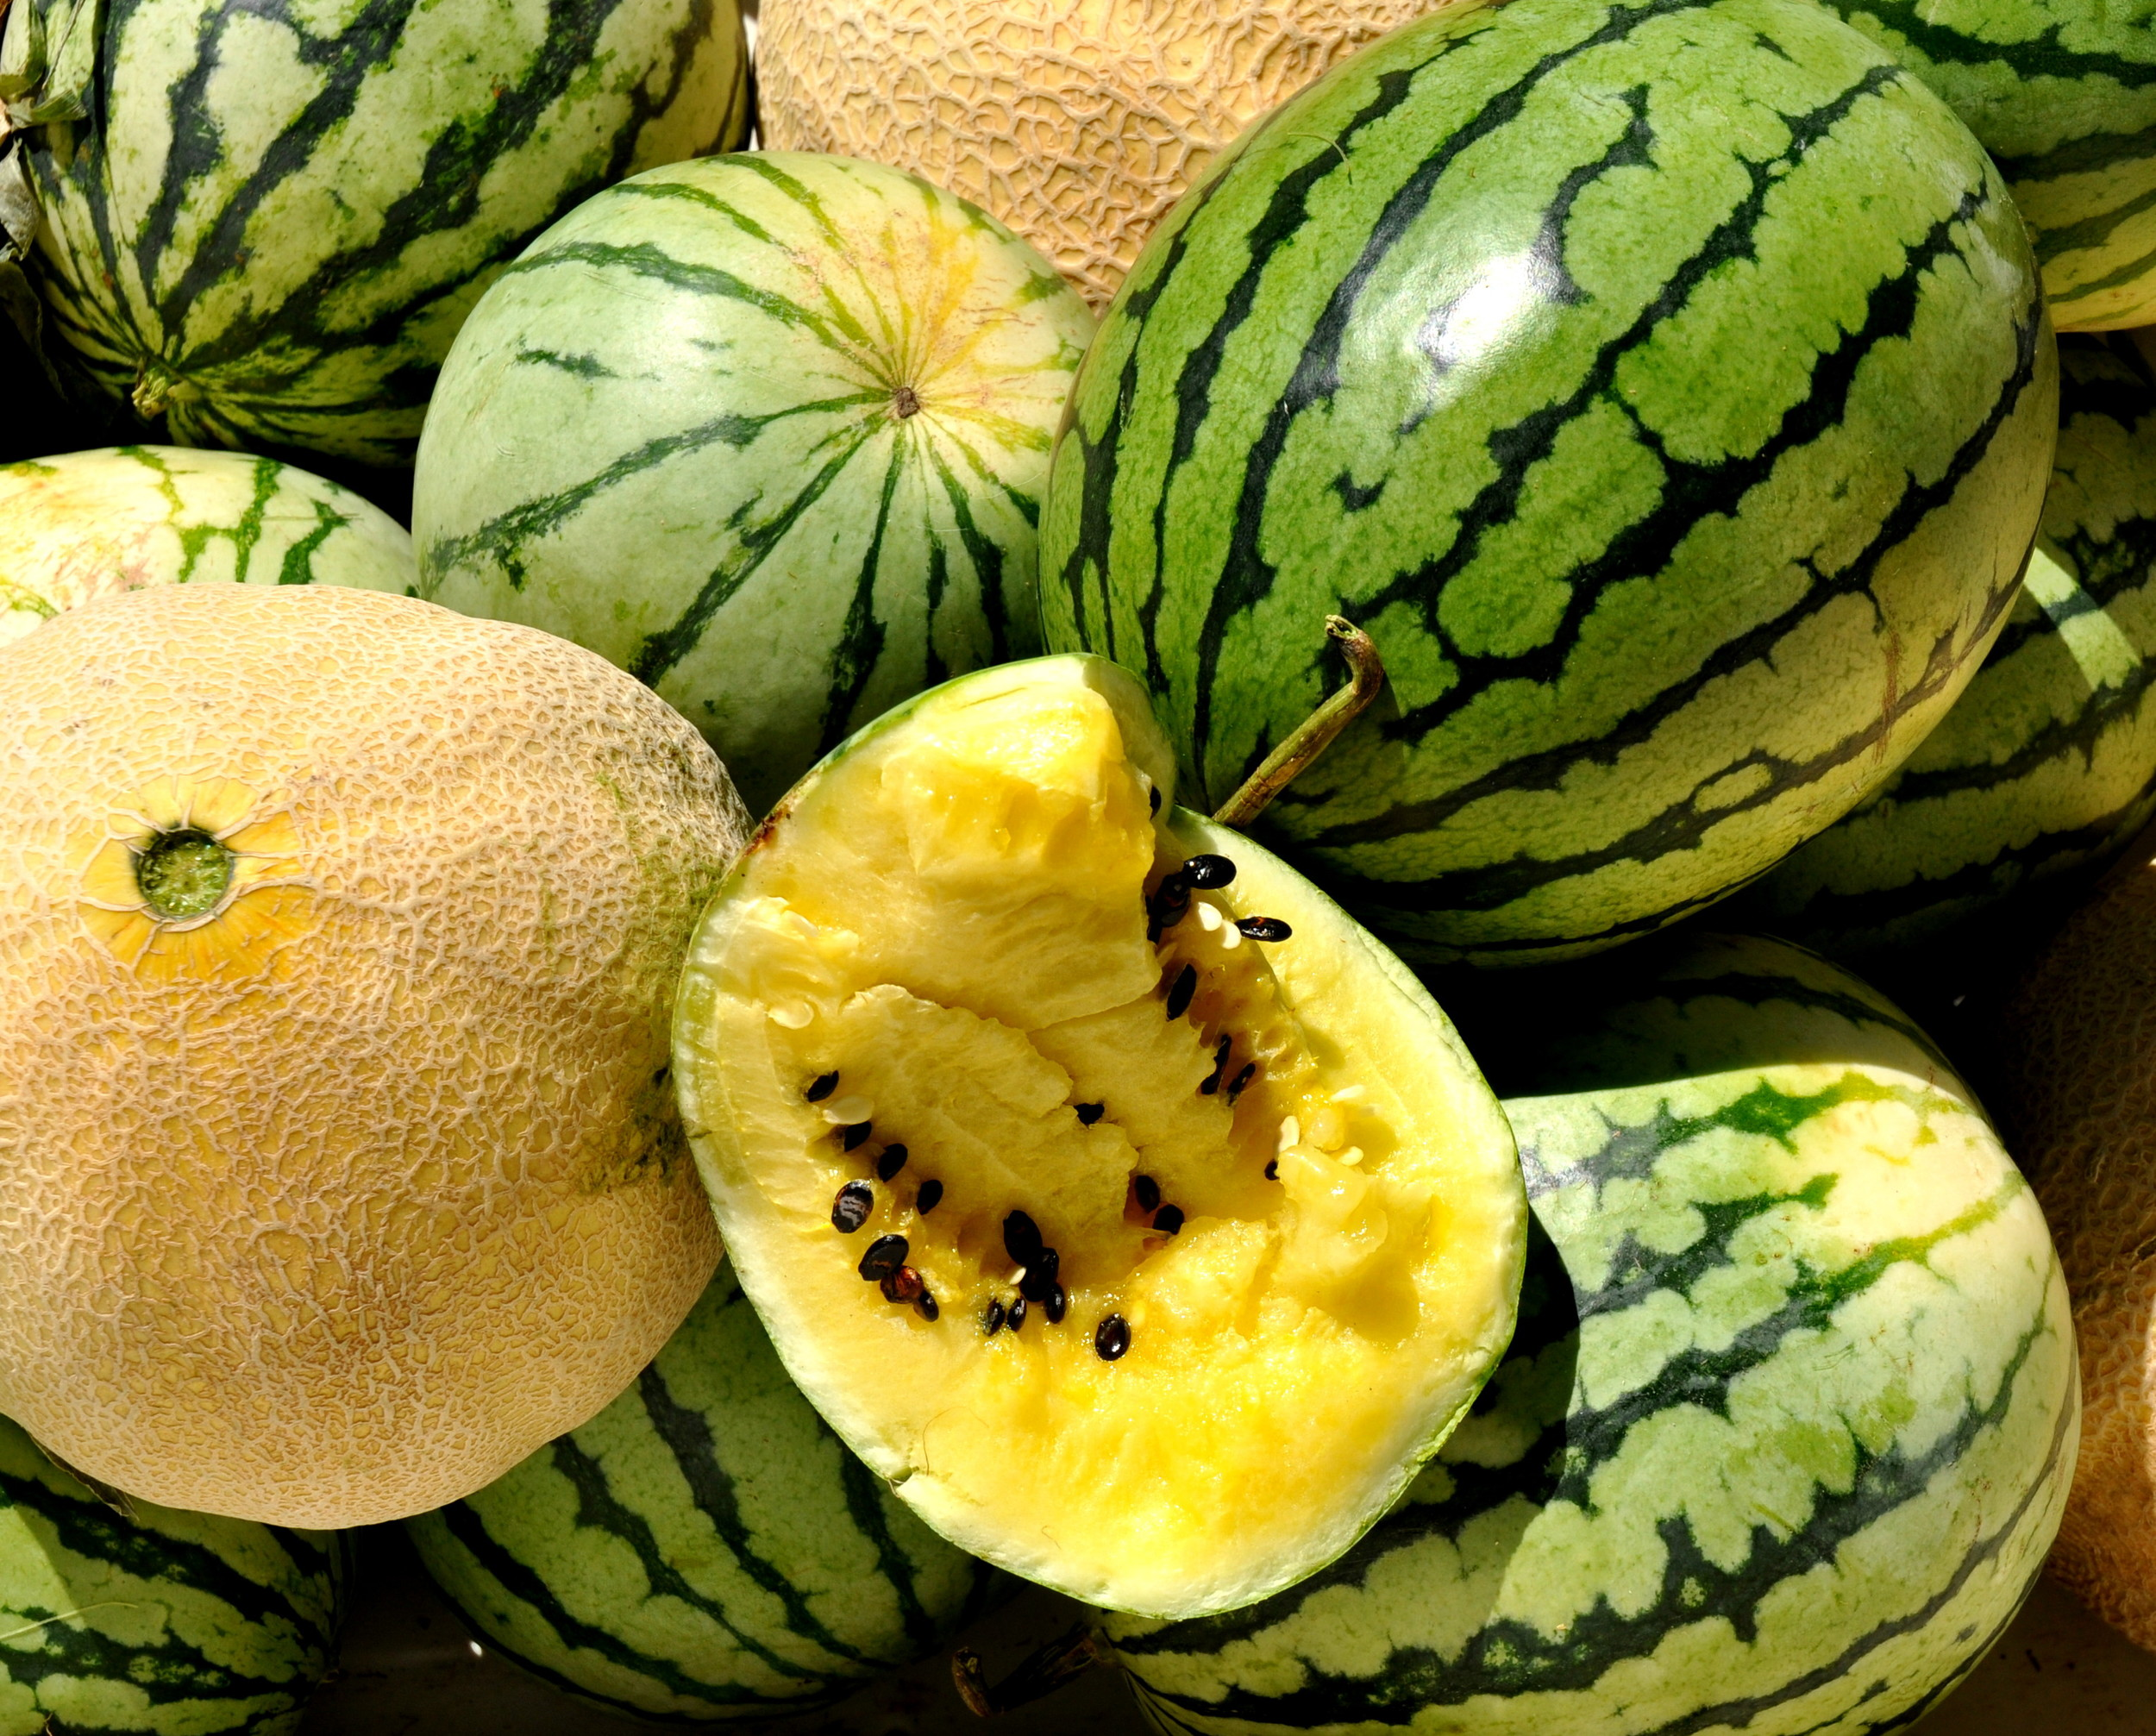 Cantaloupes & Yellow Doll watermelons from Lyall Farms. Photo copyright 2013 by Zachary D. Lyons.